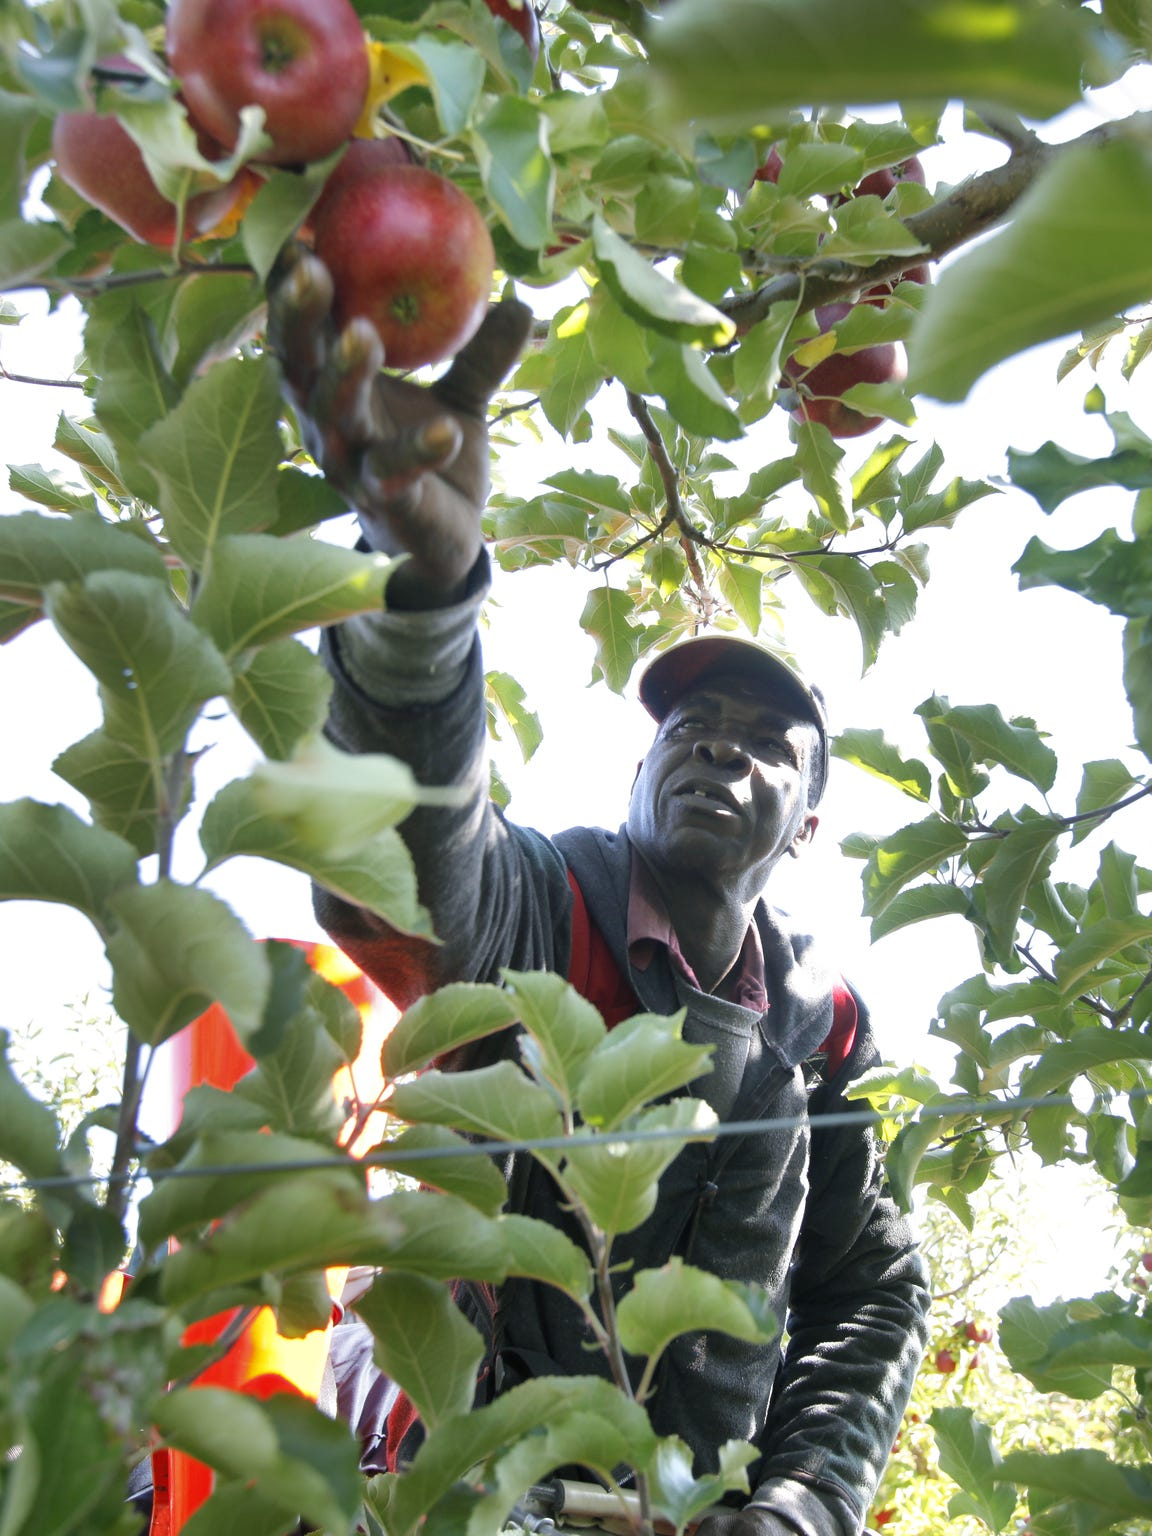 Jamaican worker Hubert Peters picks Jonagold apples